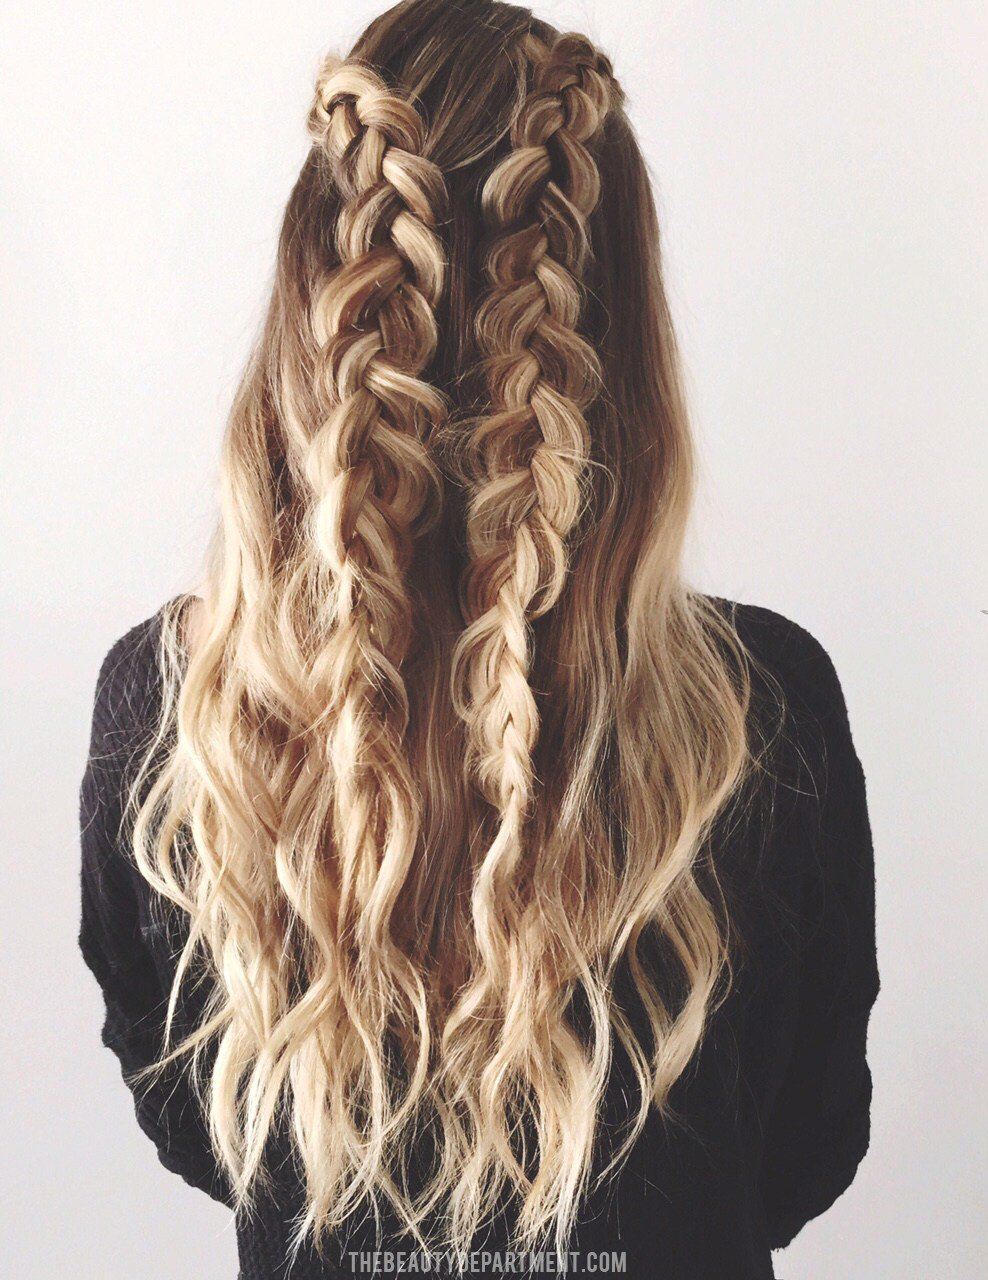 The Best Tag Archive For Dutch Braid The Beauty Department Pictures